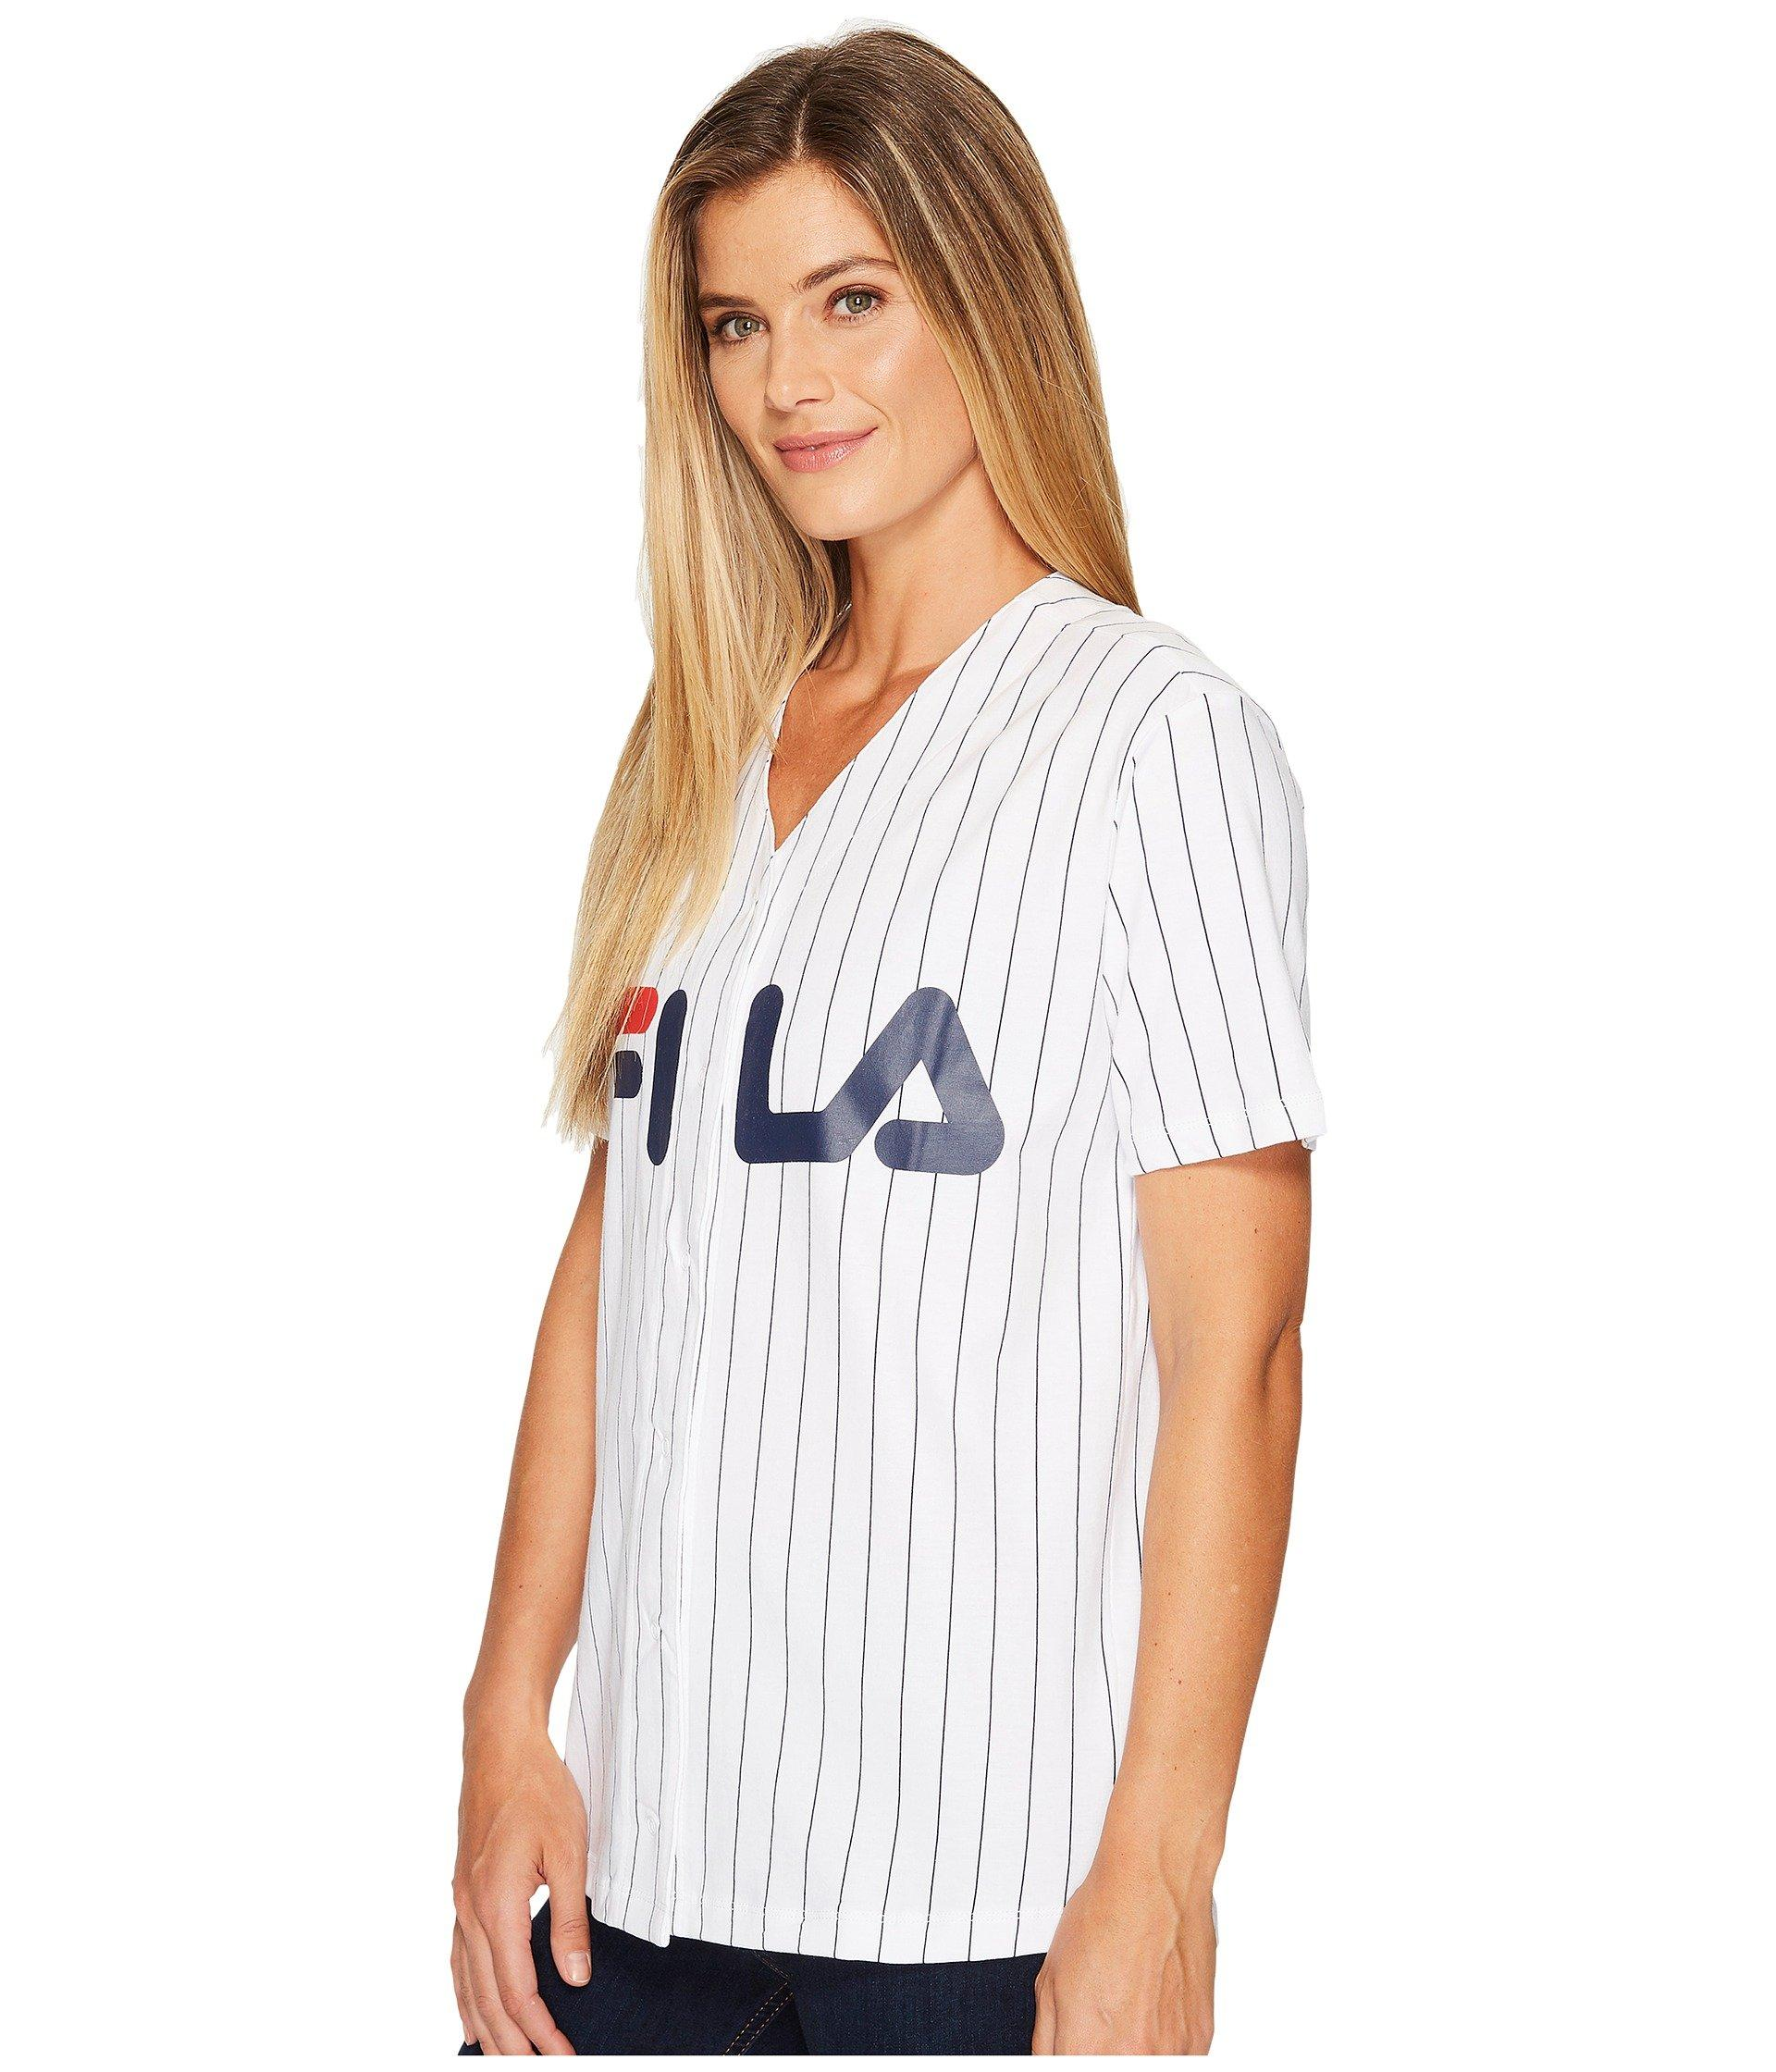 2c0a6cd6d219 Fila Lacey Baseball T-shirt in White - Lyst